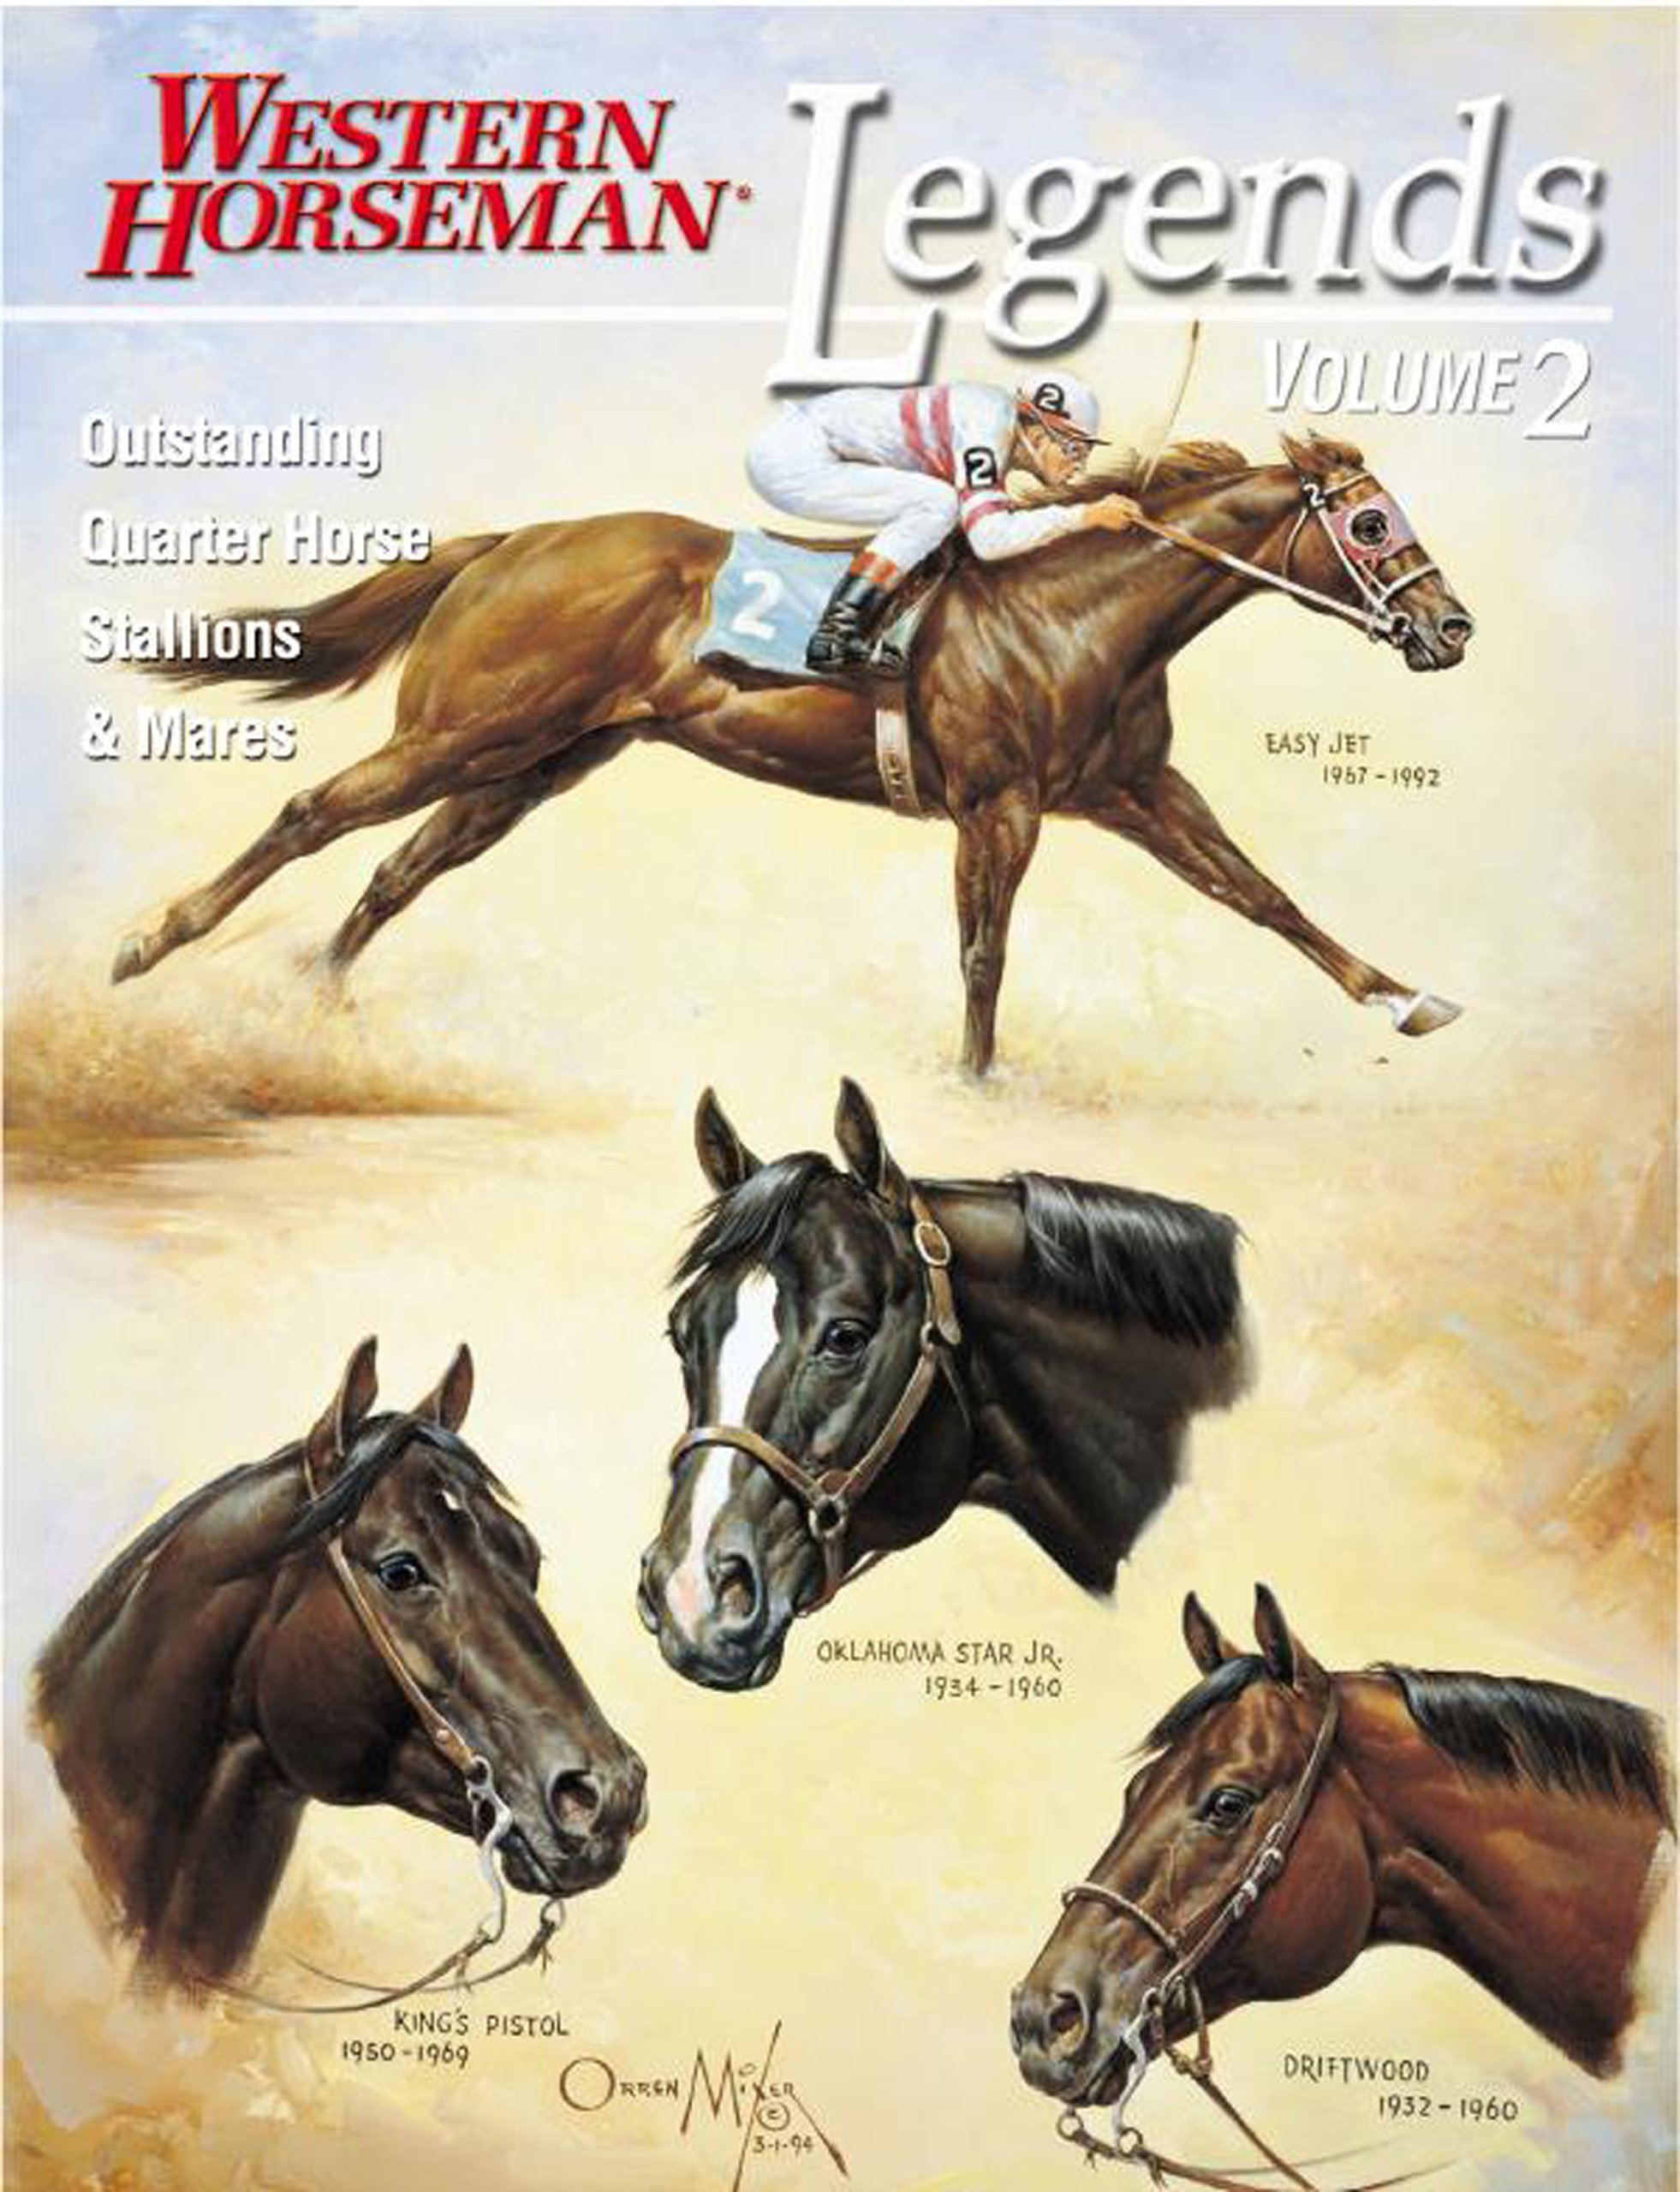 Legends 2 outstanding quarter horse stallions and mares jim legends 2 outstanding quarter horse stallions and mares jim goodhue frank holmes phil livingston diane simmons 9780911647303 amazon books fandeluxe Gallery